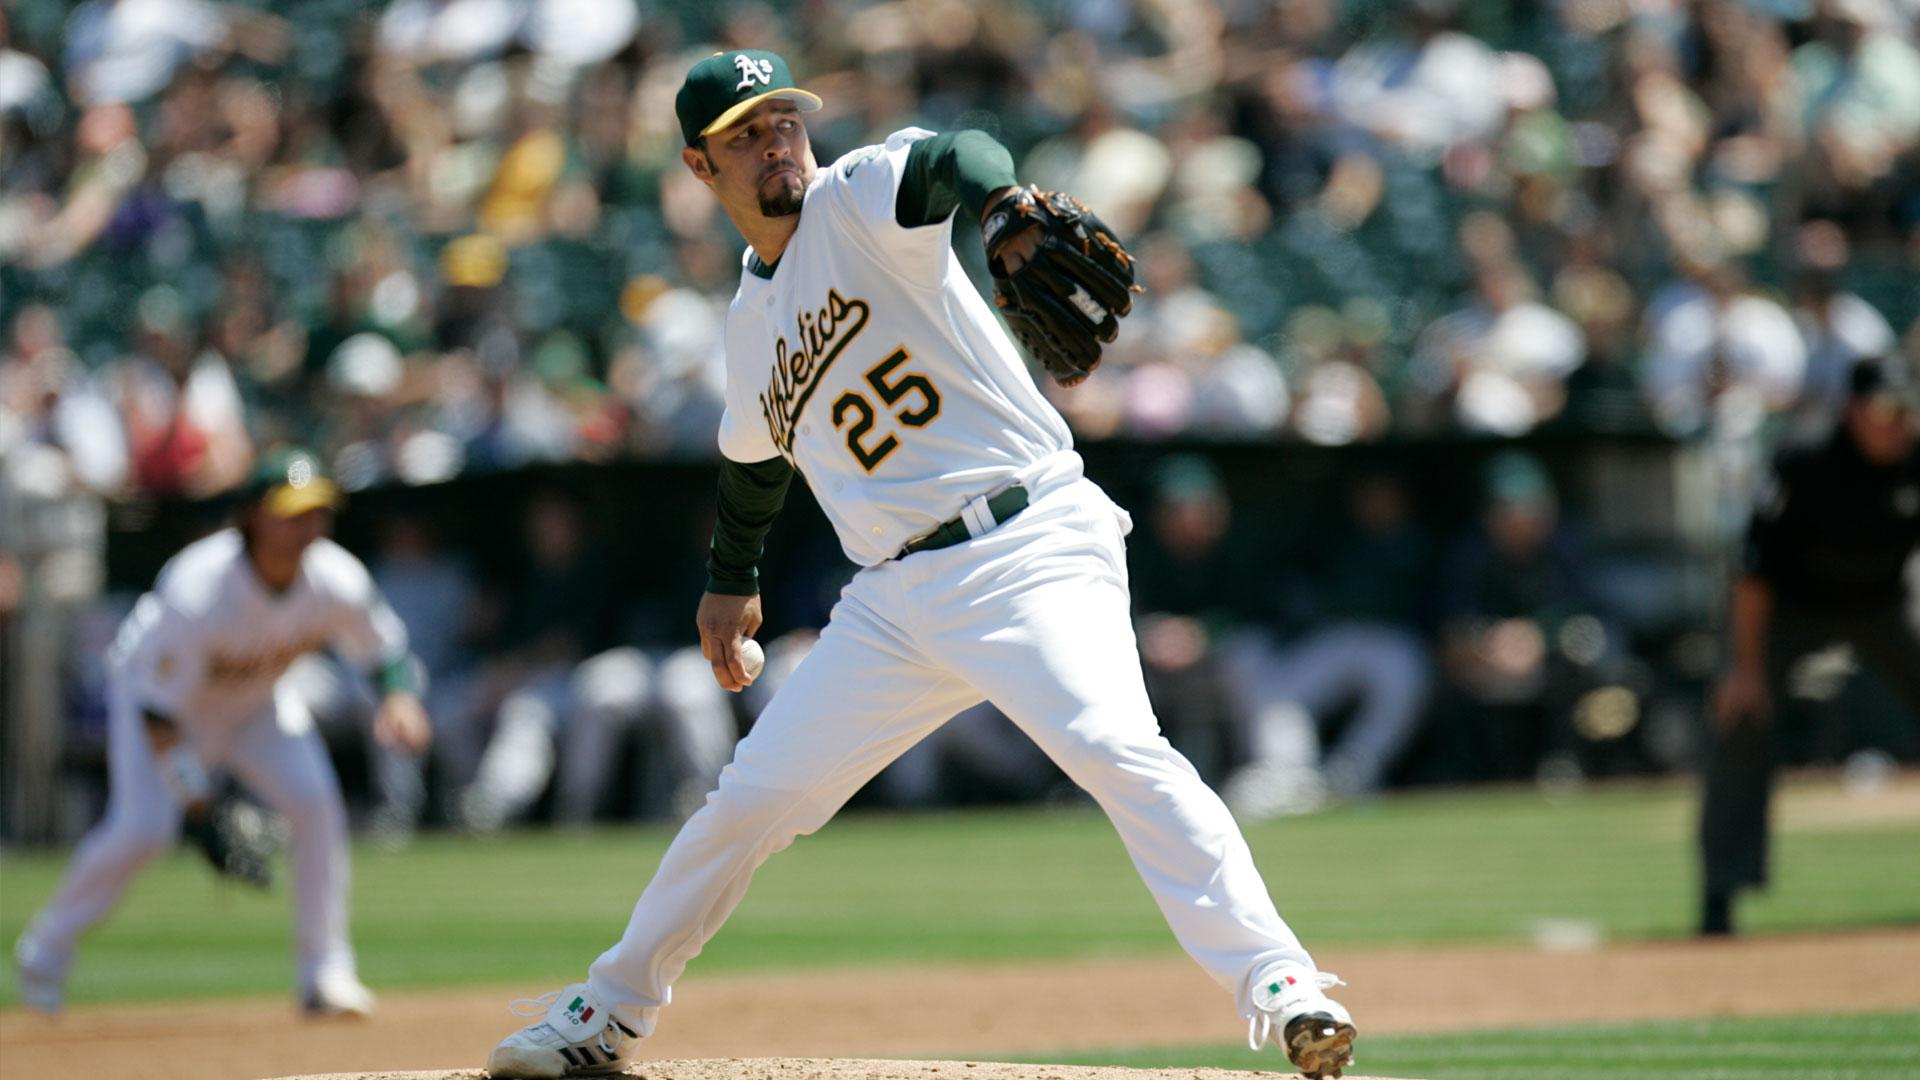 How Esteban Loiaza went from A's pitcher to cocaine dealer, prison